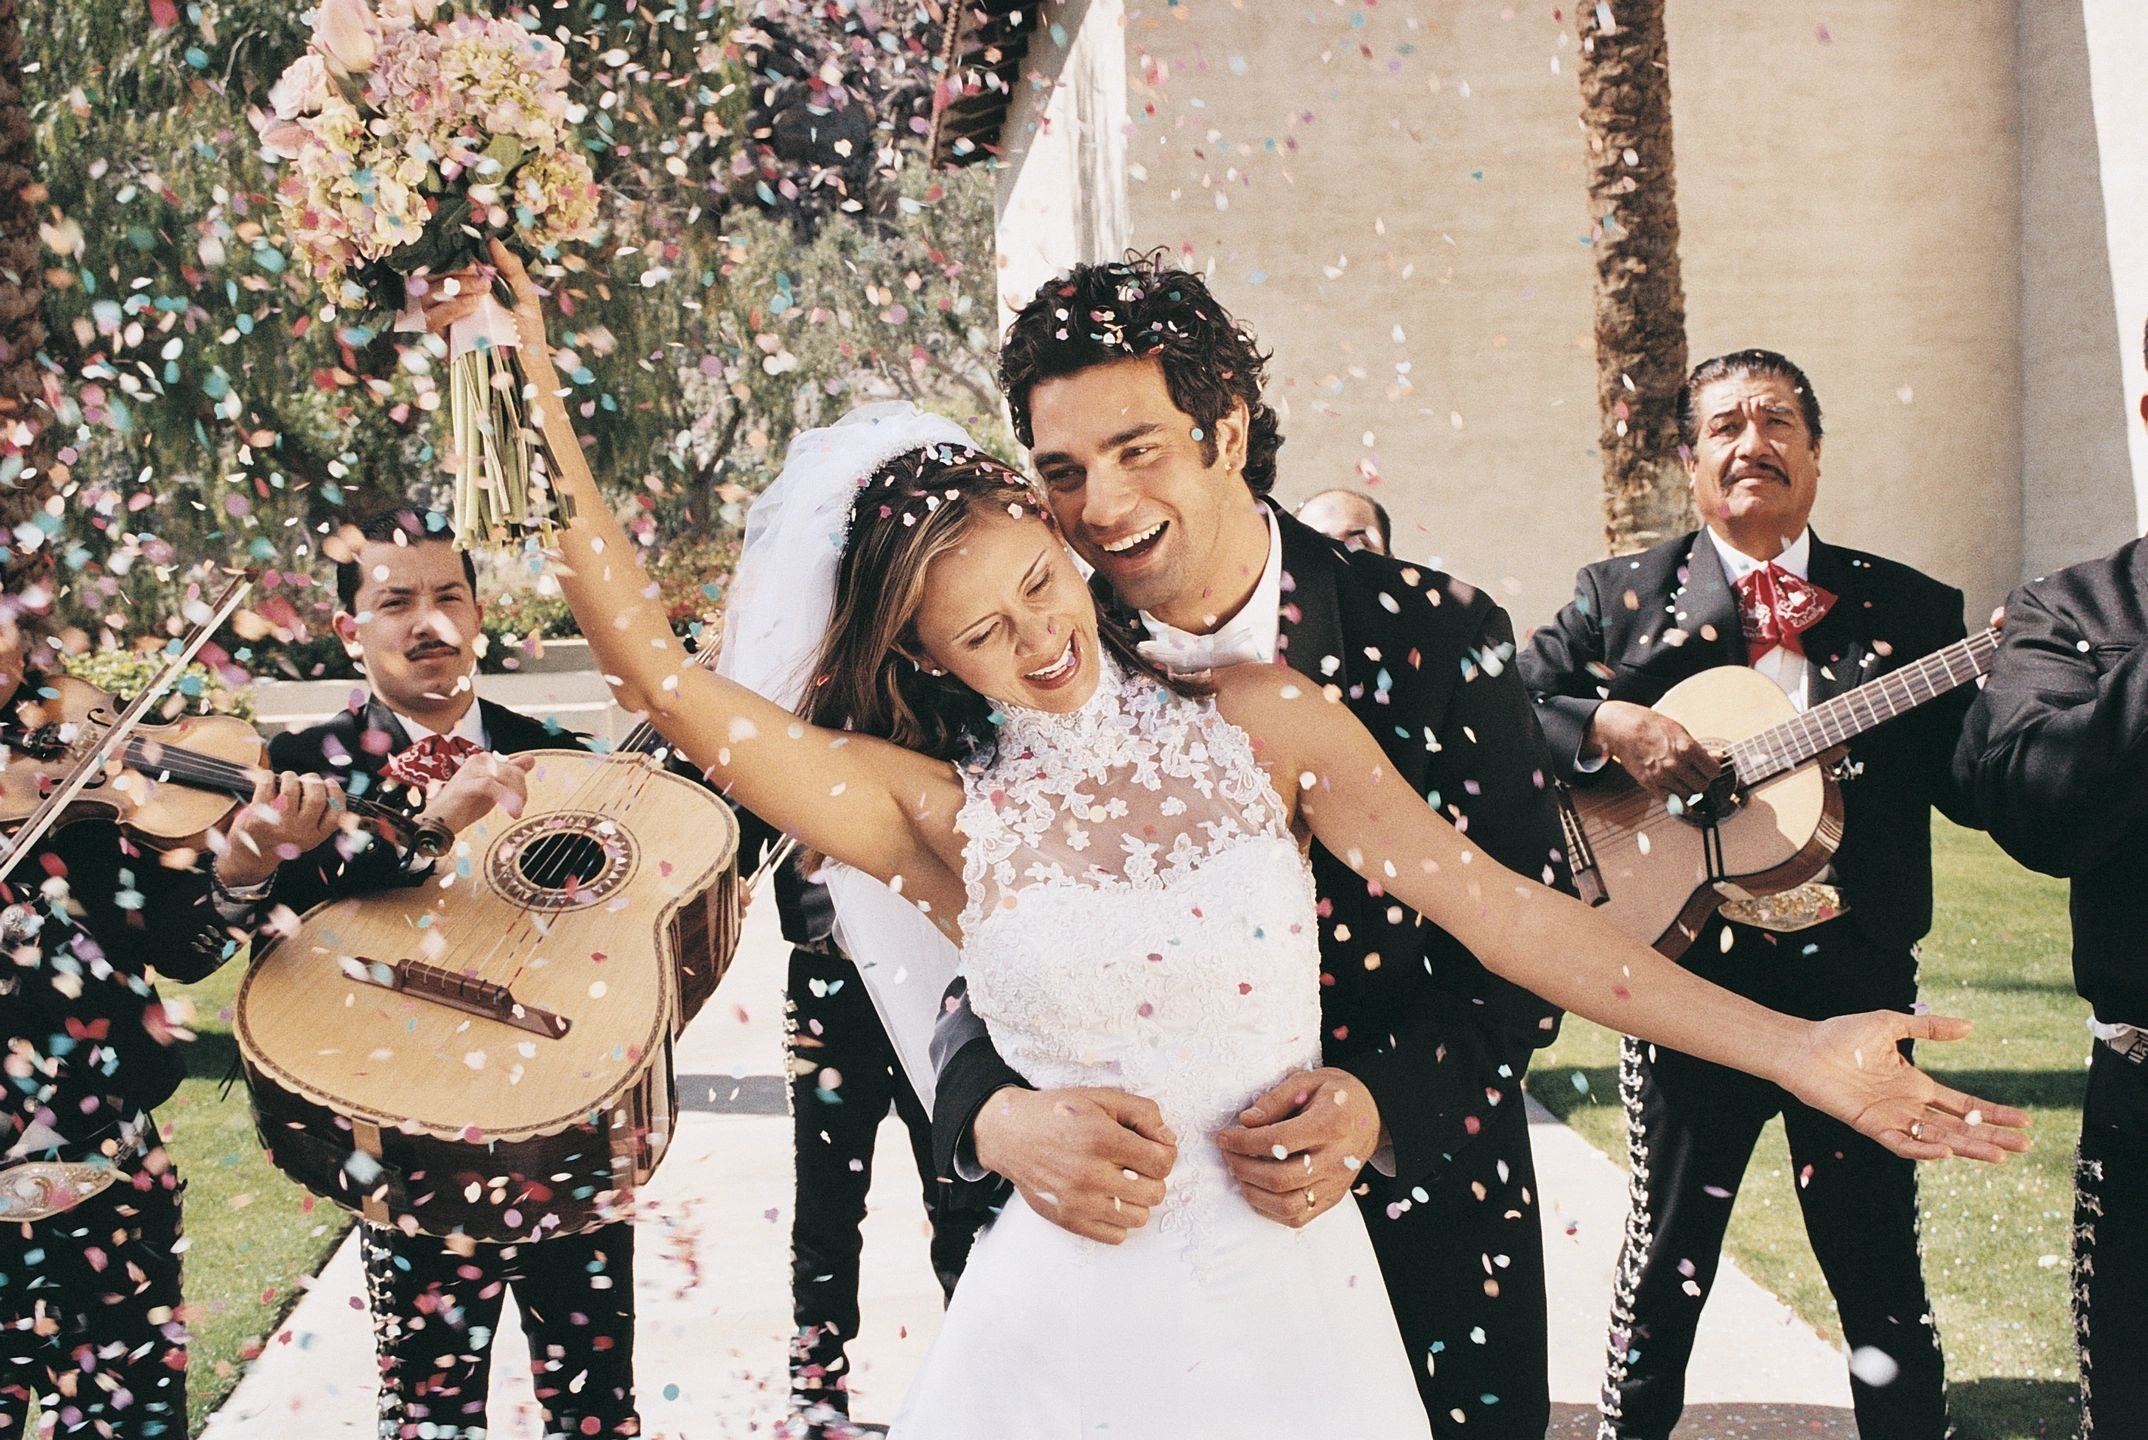 Wedding Celebration after marriage with confetti and mariachi